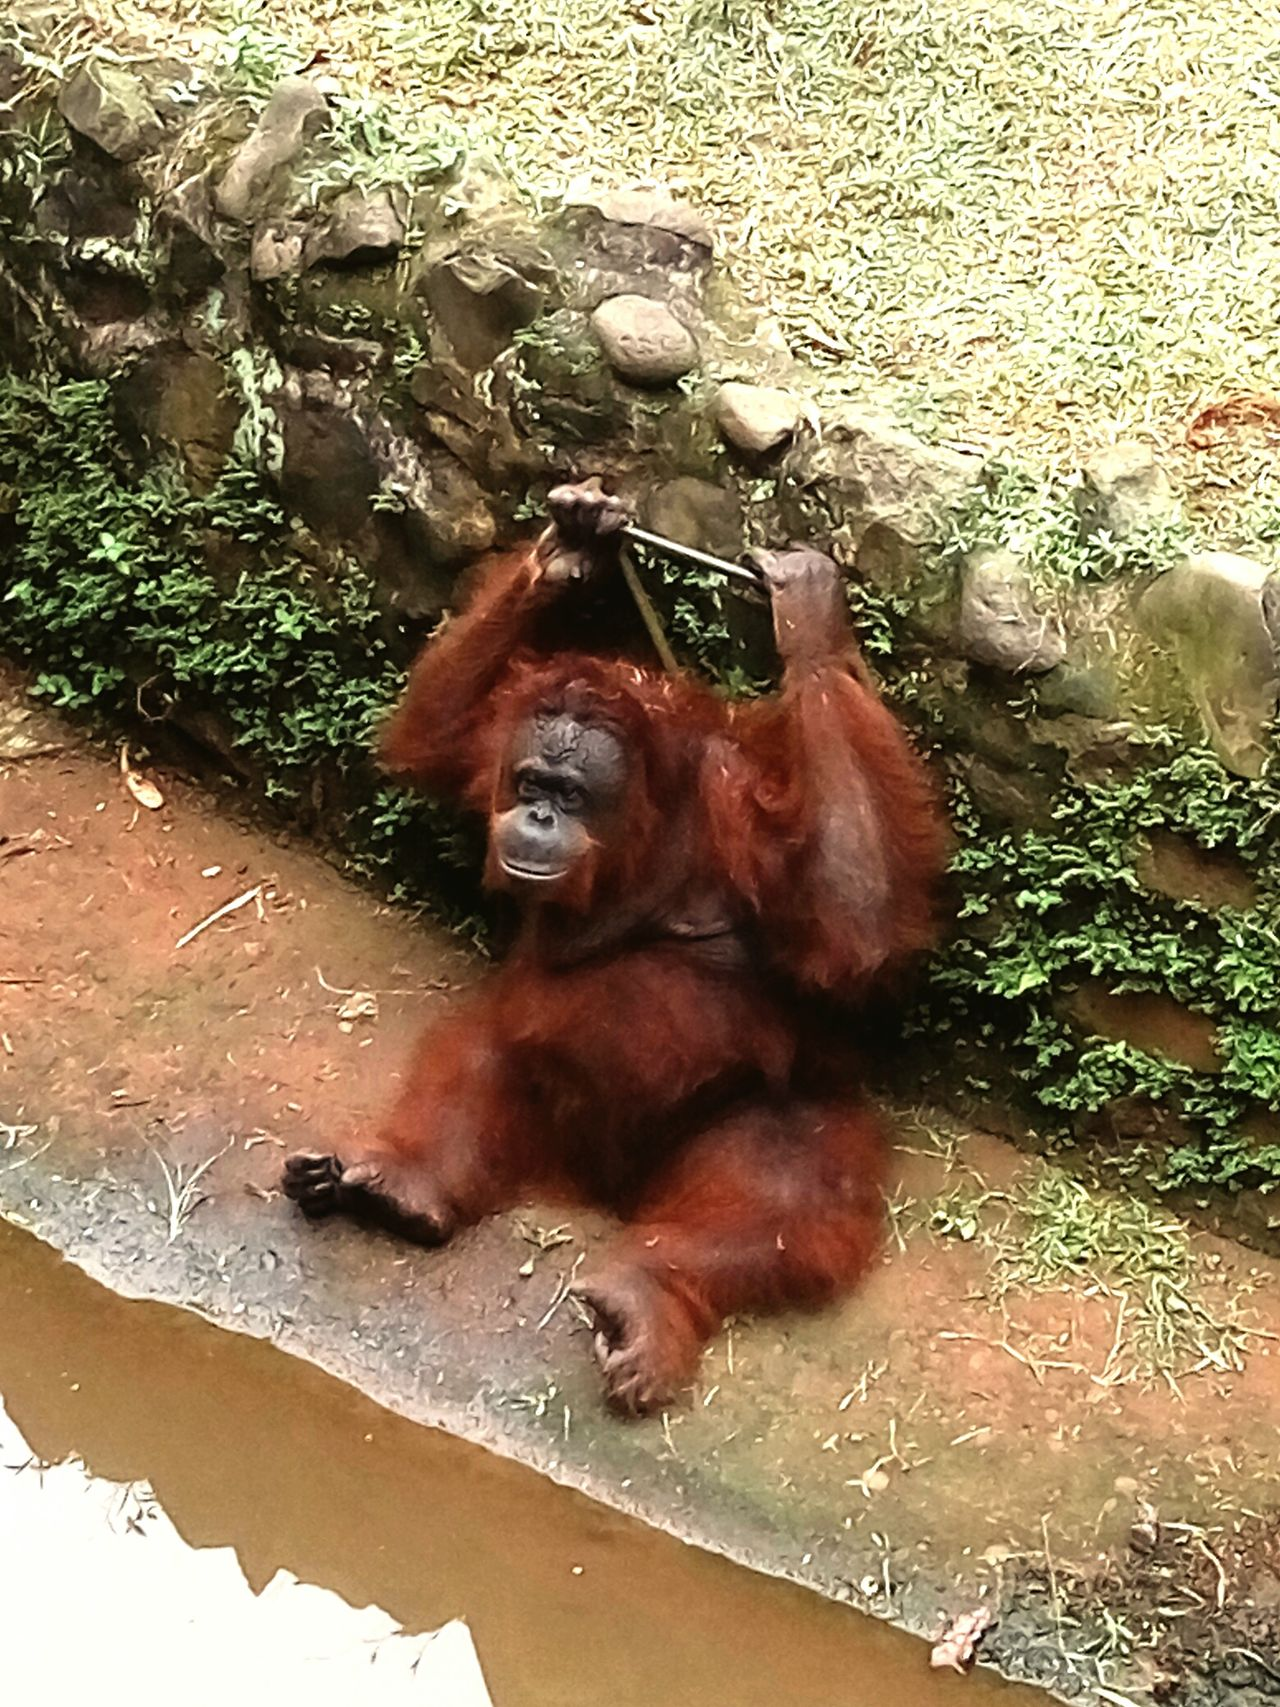 Orangutan No People Day Animal Themes Animals In The Wild One Animal Animal Wildlife Nature Outdoors Mammal Close-up INDONESIA Endangered Species